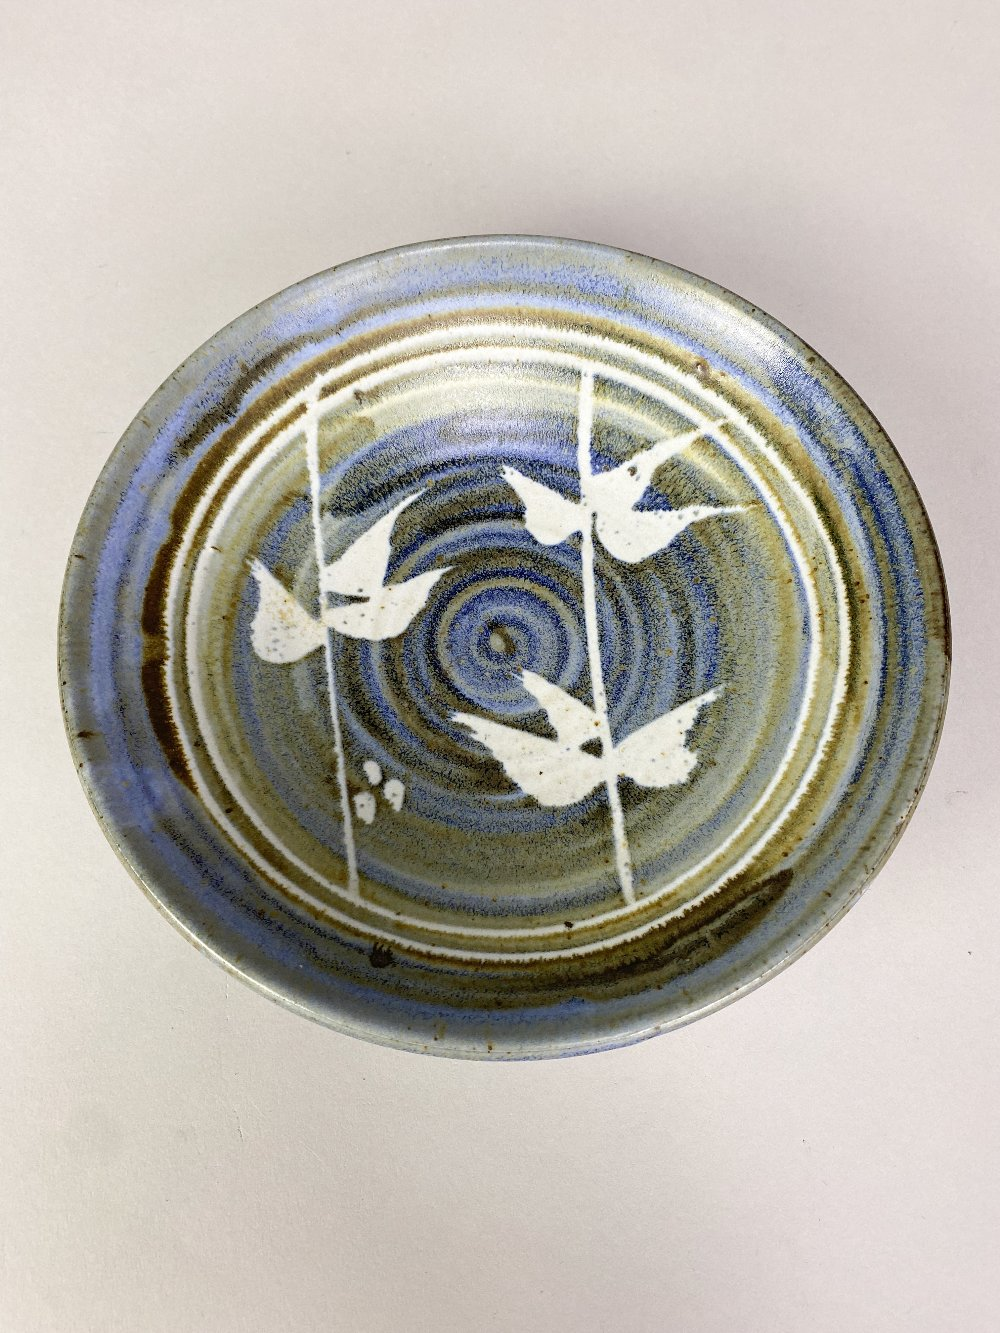 BRYAN NEWMAN (1935-2019) for Aller Pottery; a stoneware footed dish with wax resist decoration on - Image 3 of 5